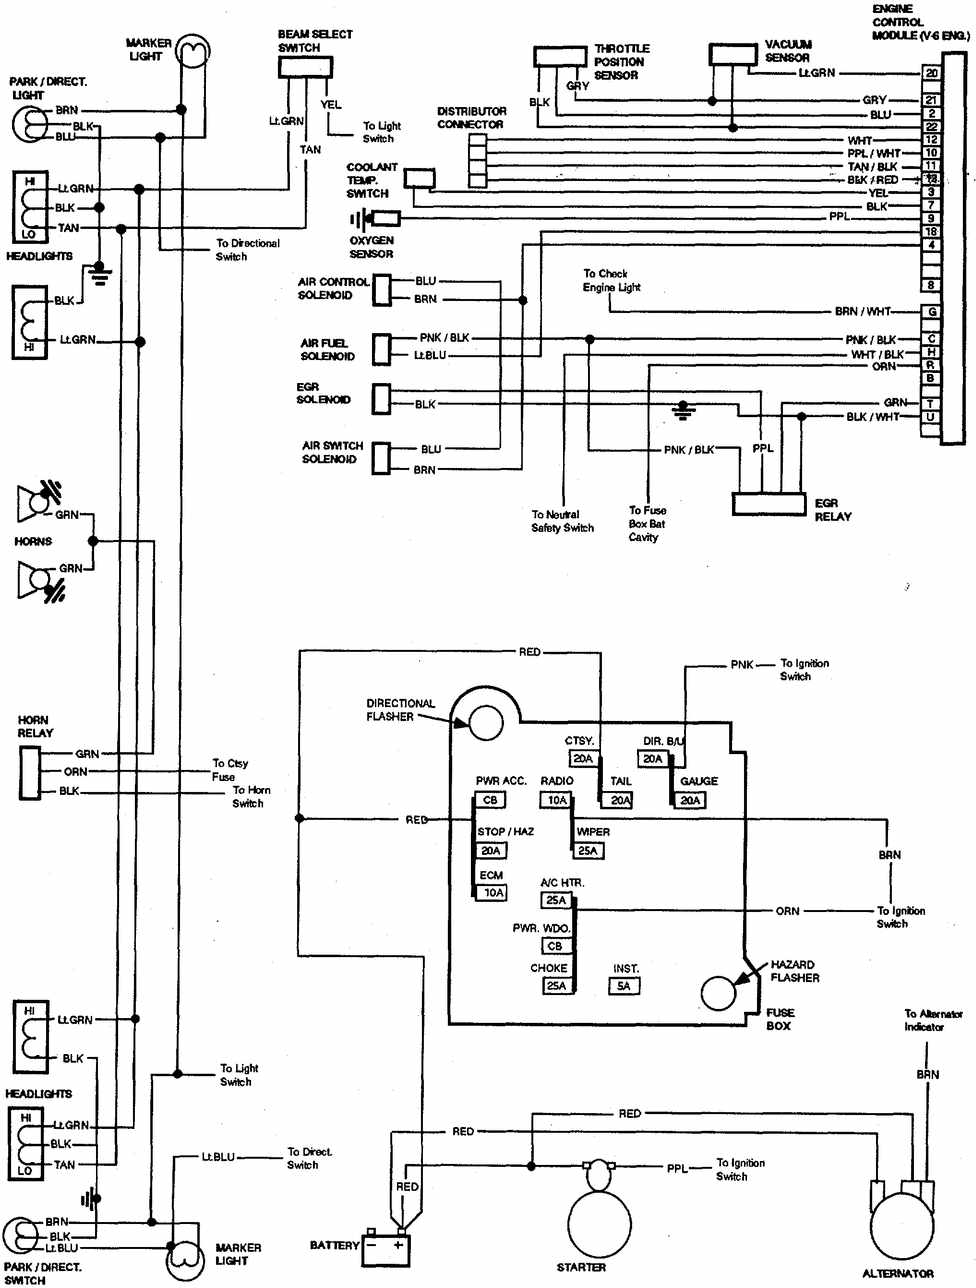 1966 chevy c10 350 wiring diagram